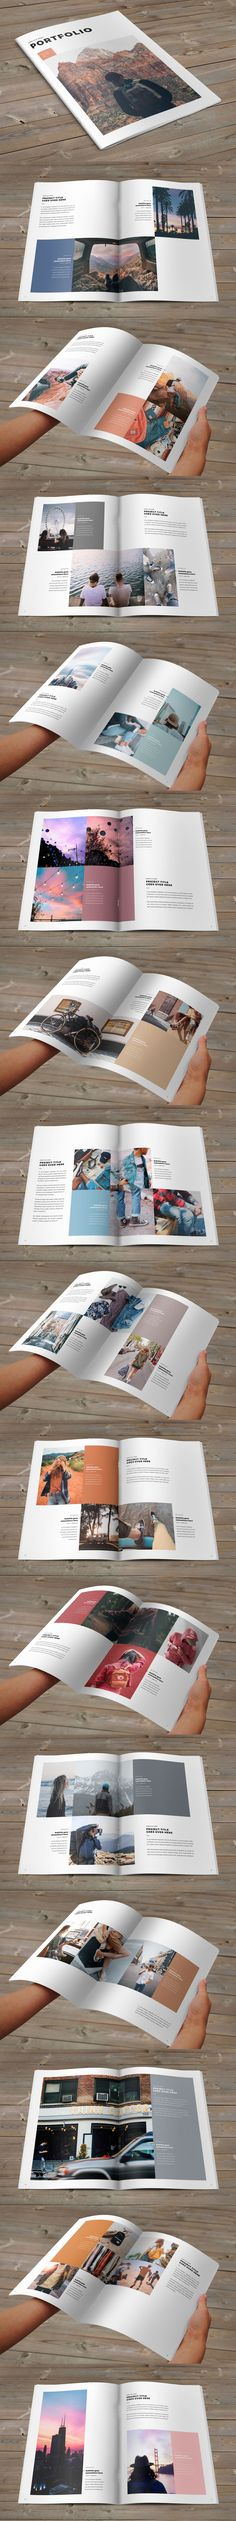 Minimal Fashion Photography Portfolio Brochure Template InDesign INDD